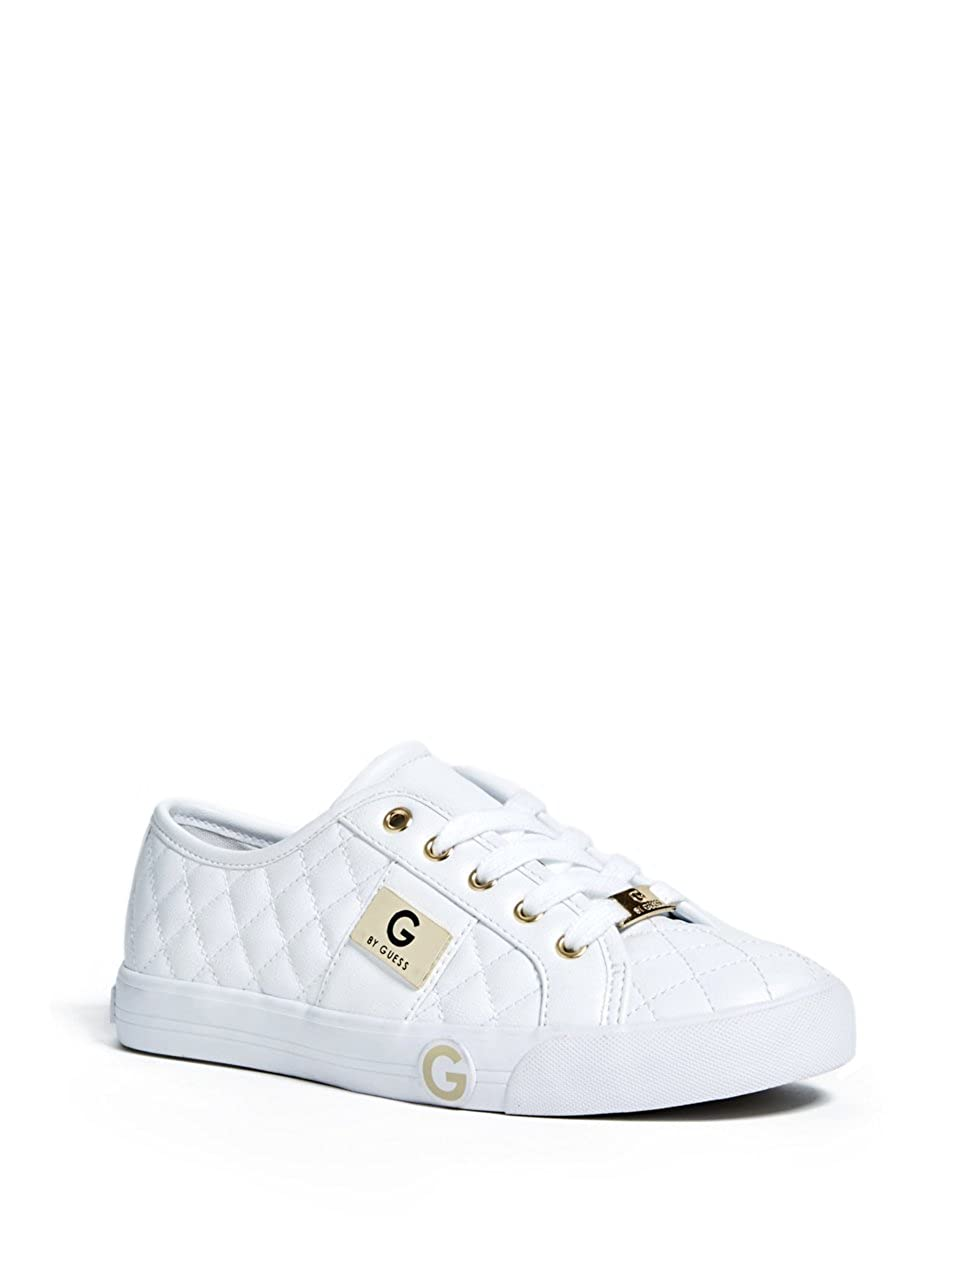 Lace Up Fashion Sneakers